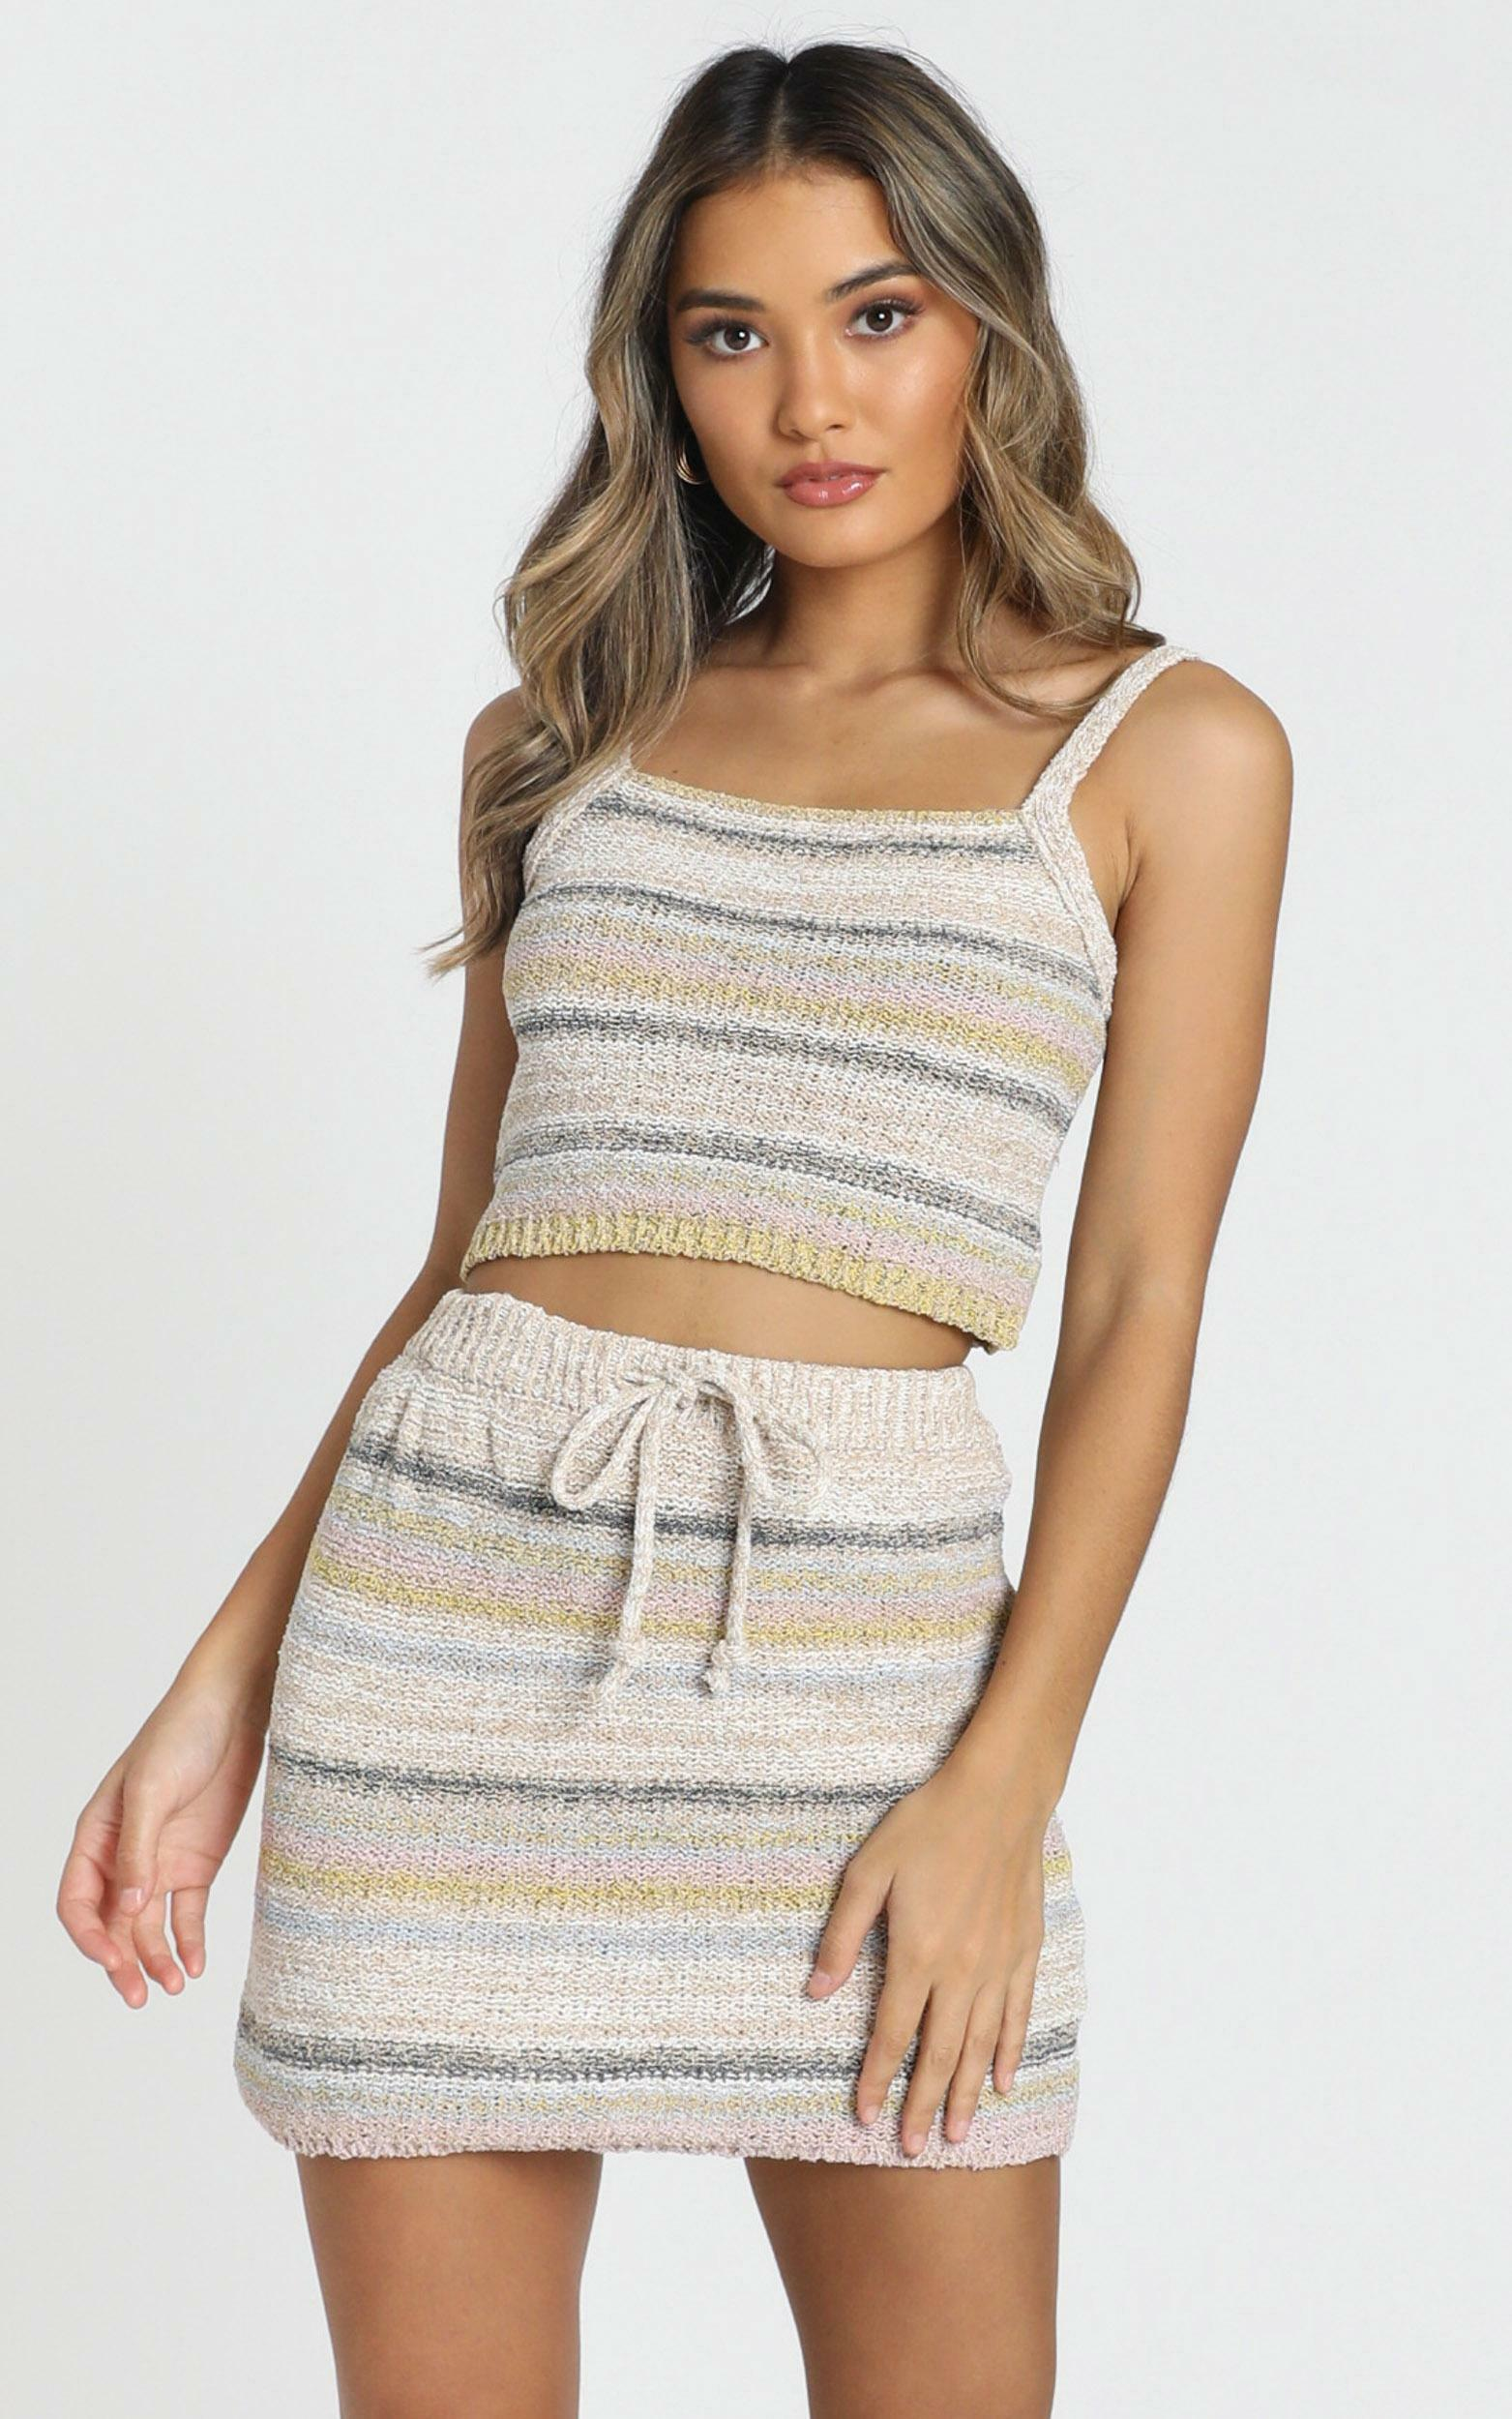 Forever Sunshine knit top in cream stripe - 16 (XXL), Cream, hi-res image number null